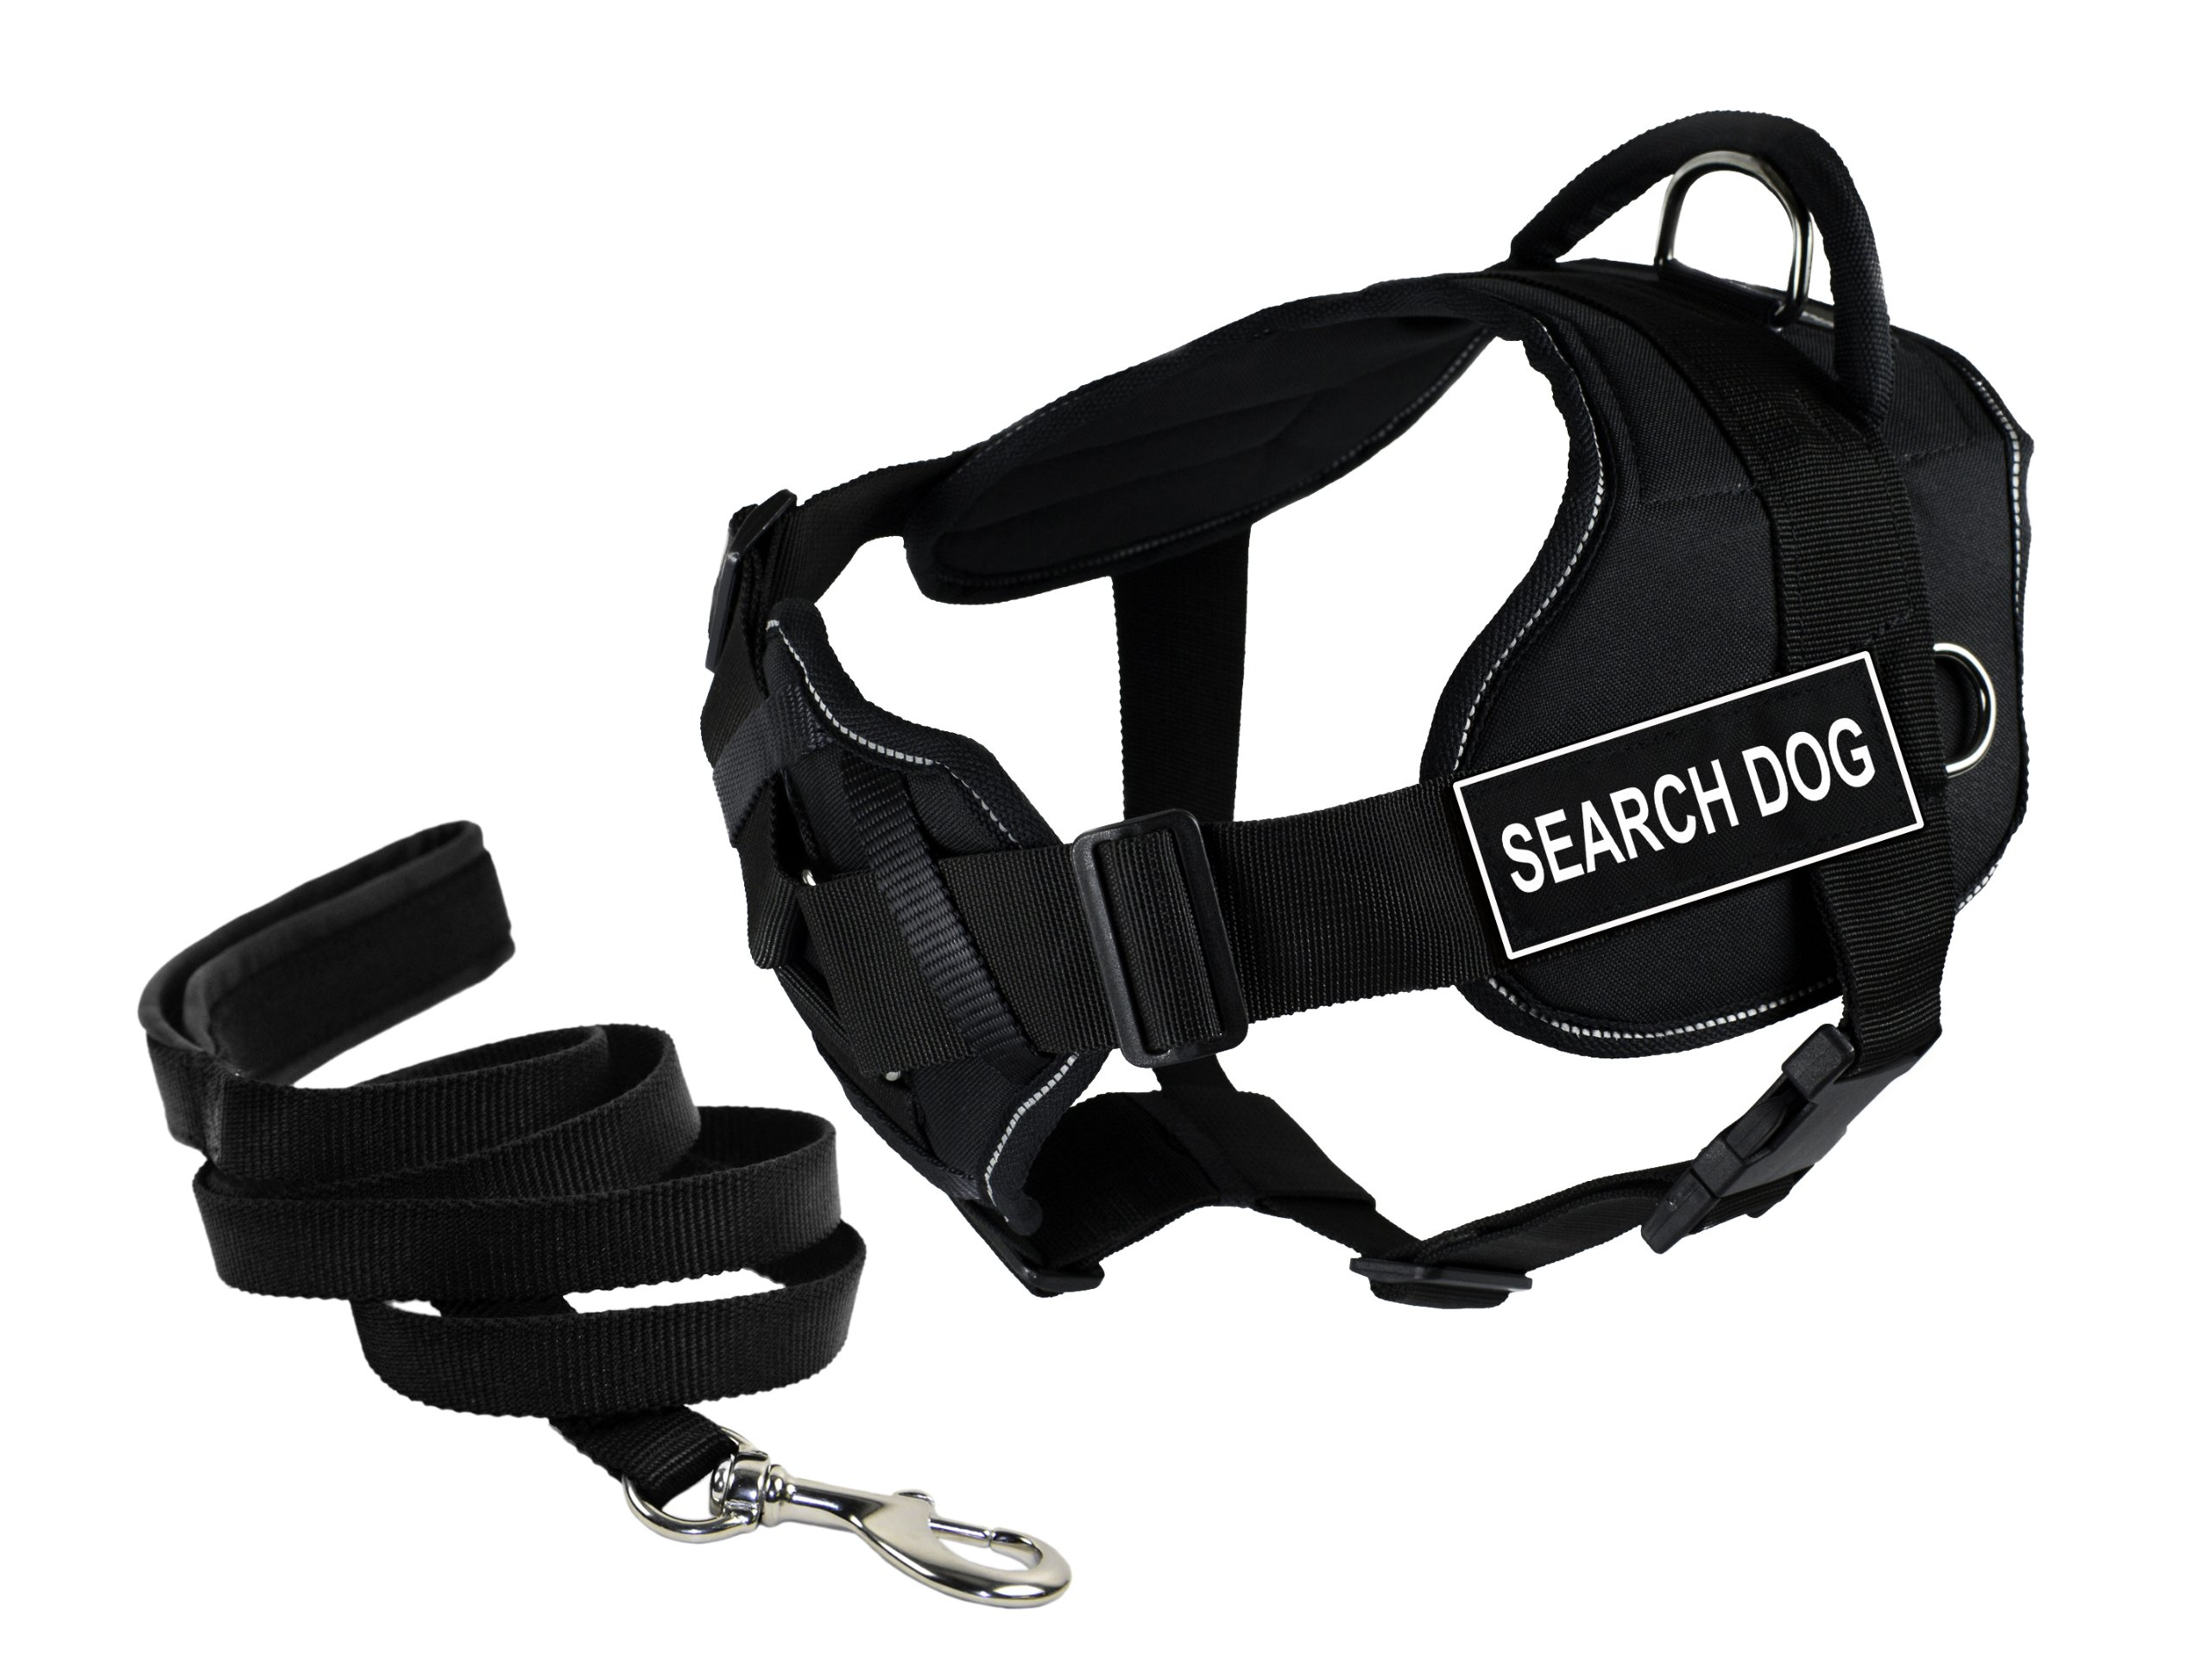 Dean & Tyler's DT Fun Chest Support ''SEARCH DOG '' Harness with Reflective Trim, X-Large, and 6 ft Padded Puppy Leash.